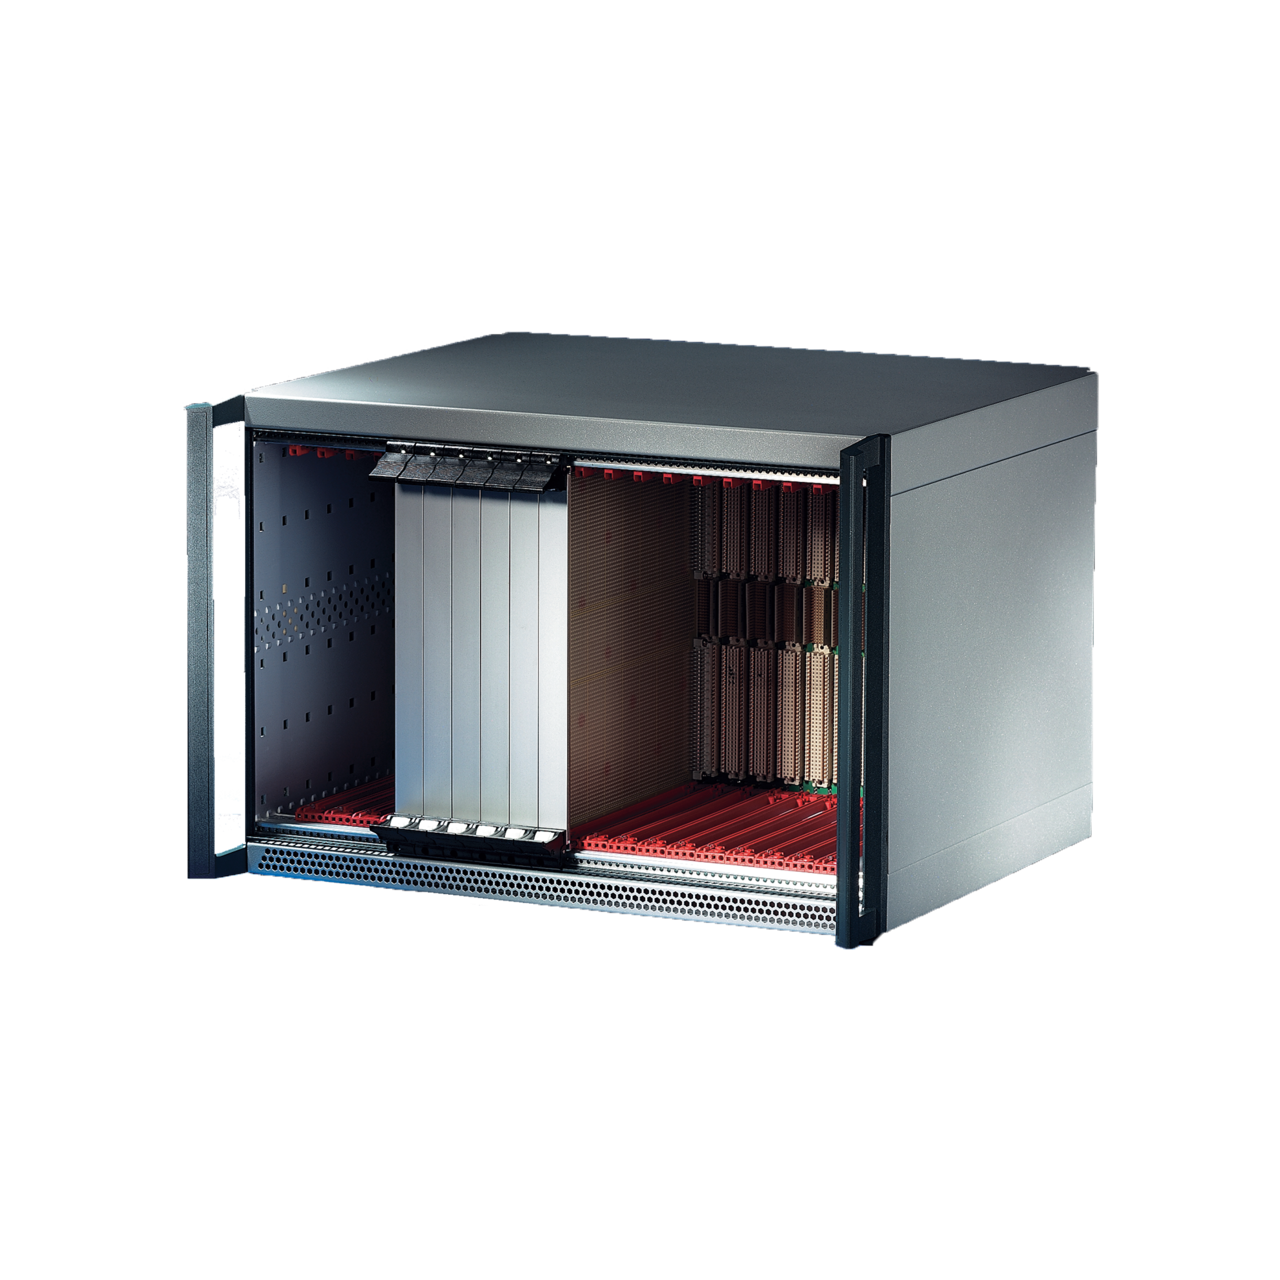 Image for RatiopacPRO AIR, Case, Unshielded, With Handles from Schroff - North America